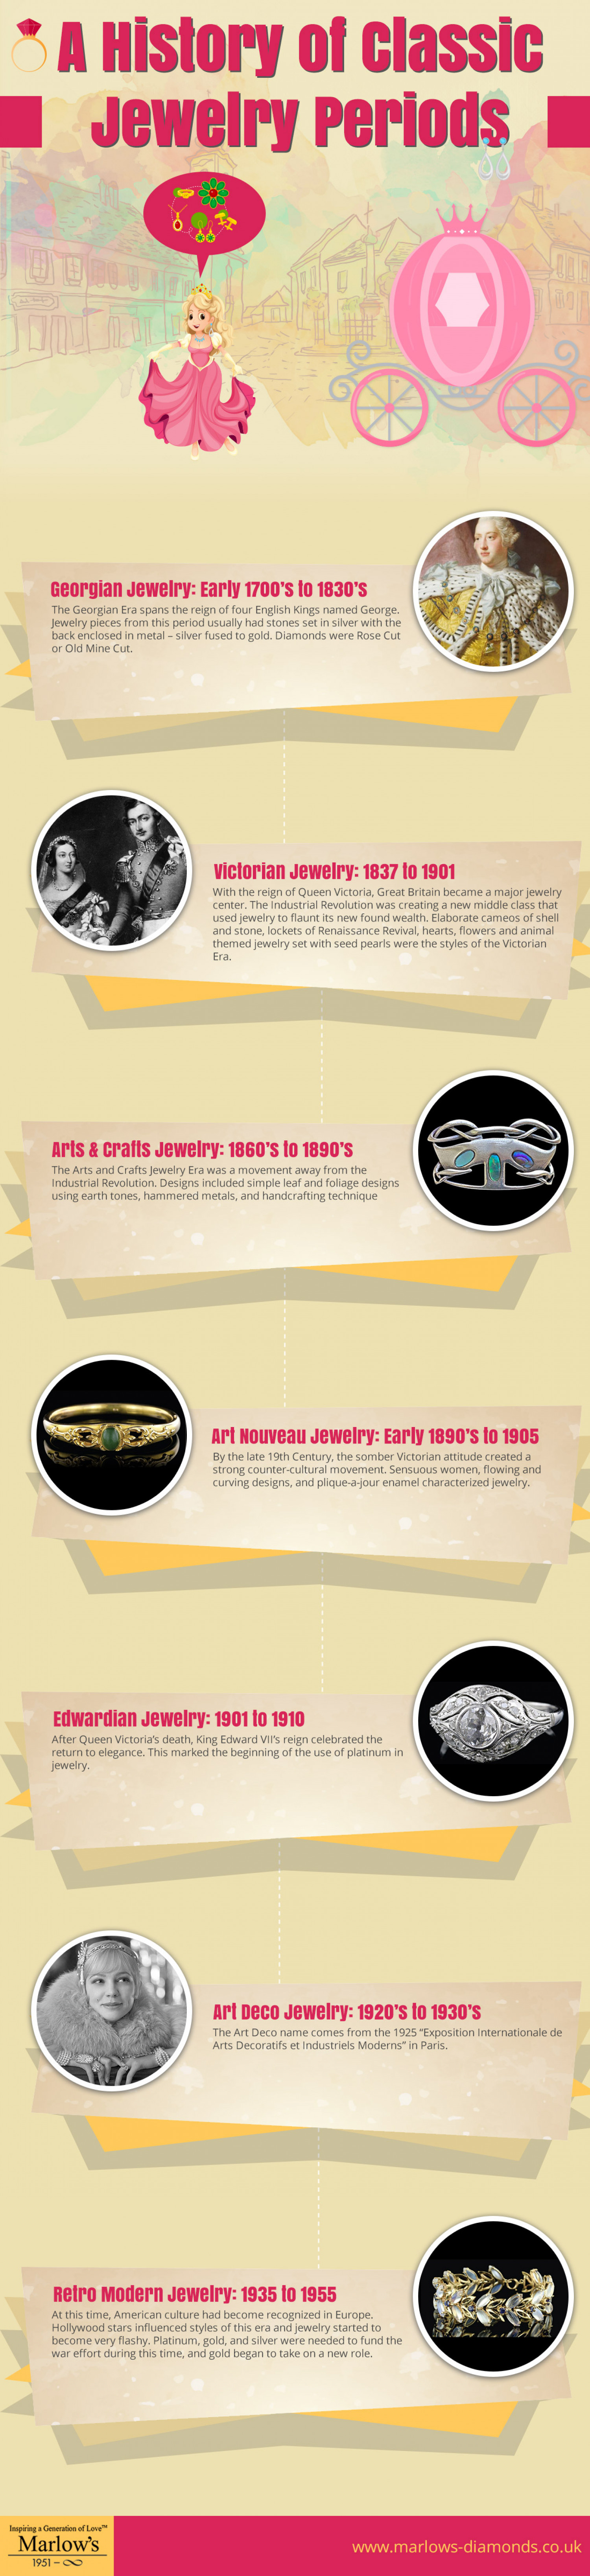 A History of Classic Jewelry Periods Infographic